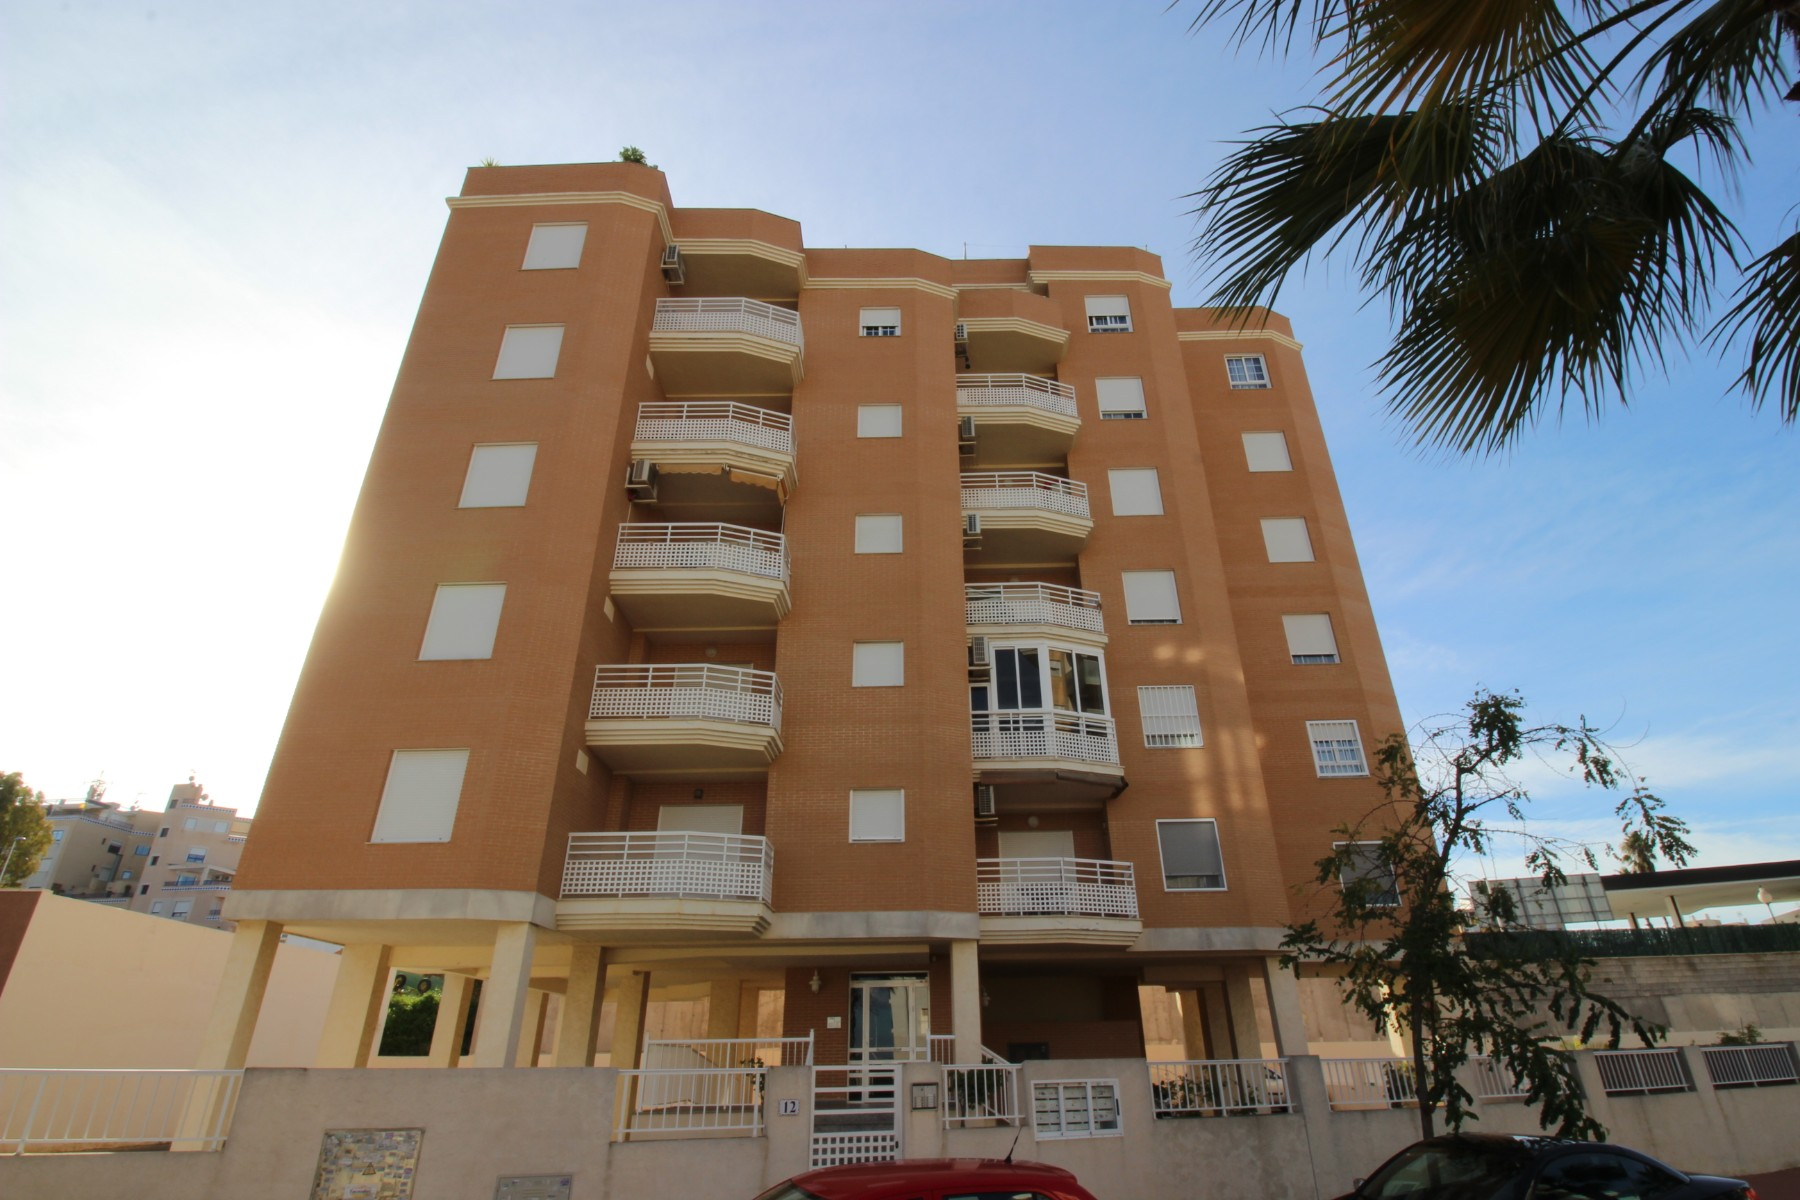 2 bedroom Apartament in Zona Norte in Nexus Grupo